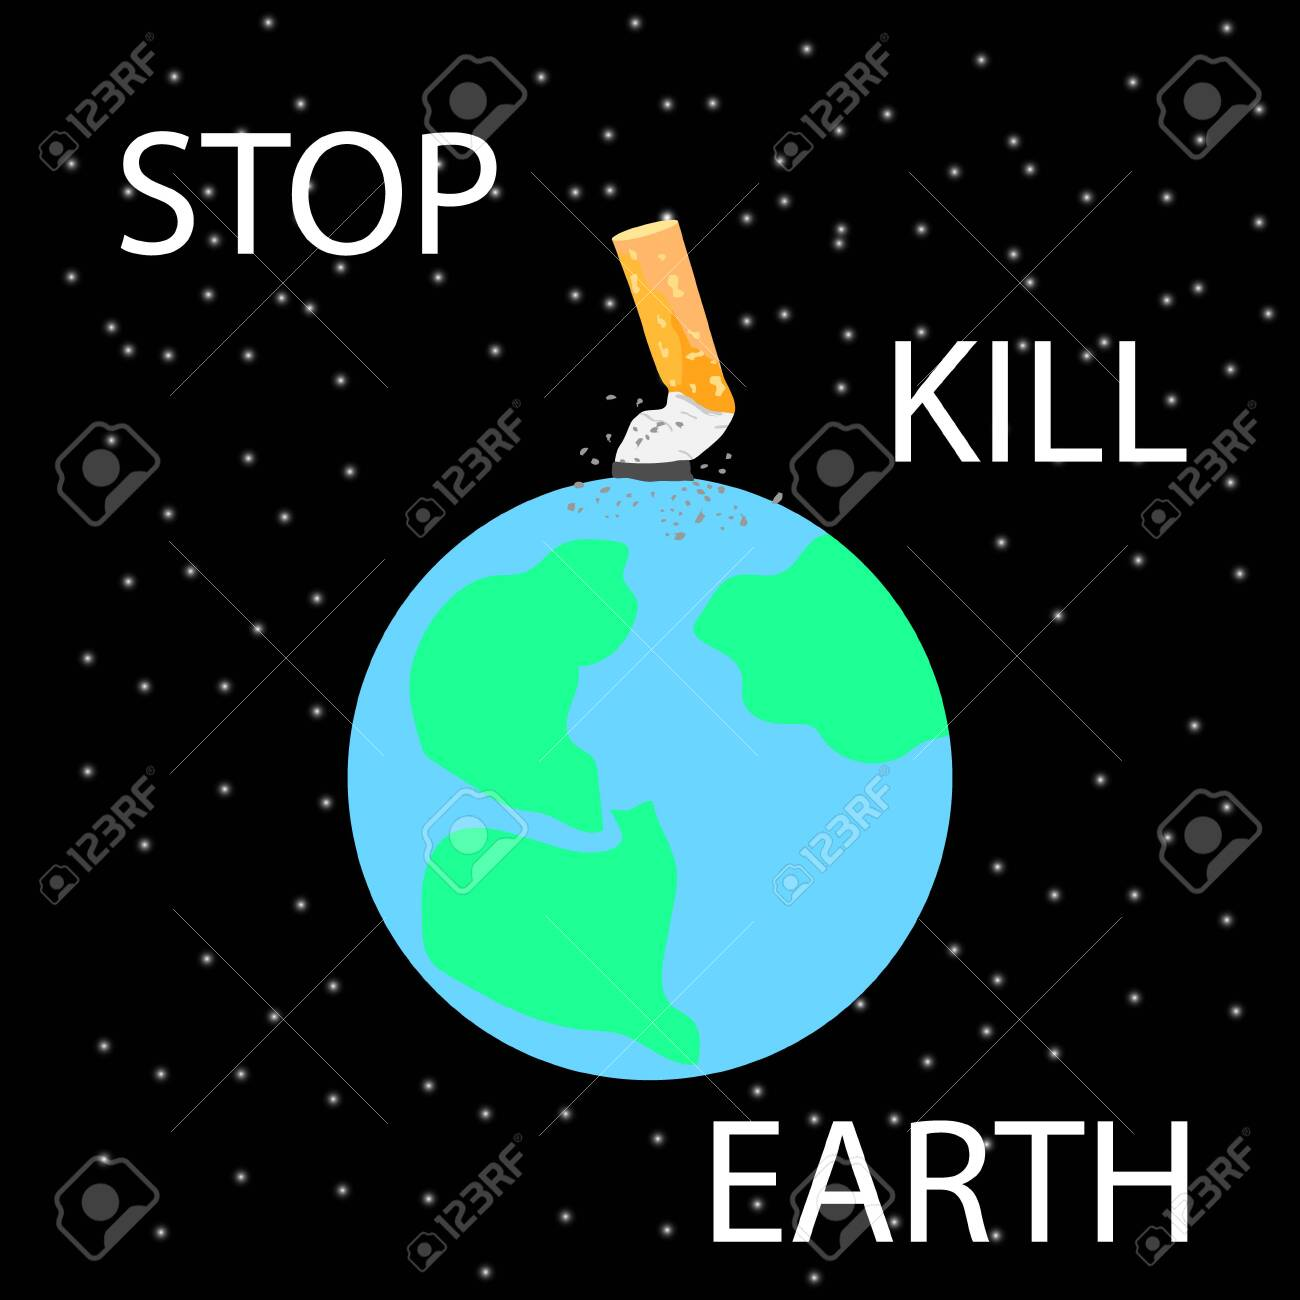 cigarette stub extinguished on planet earth in space anti smoking